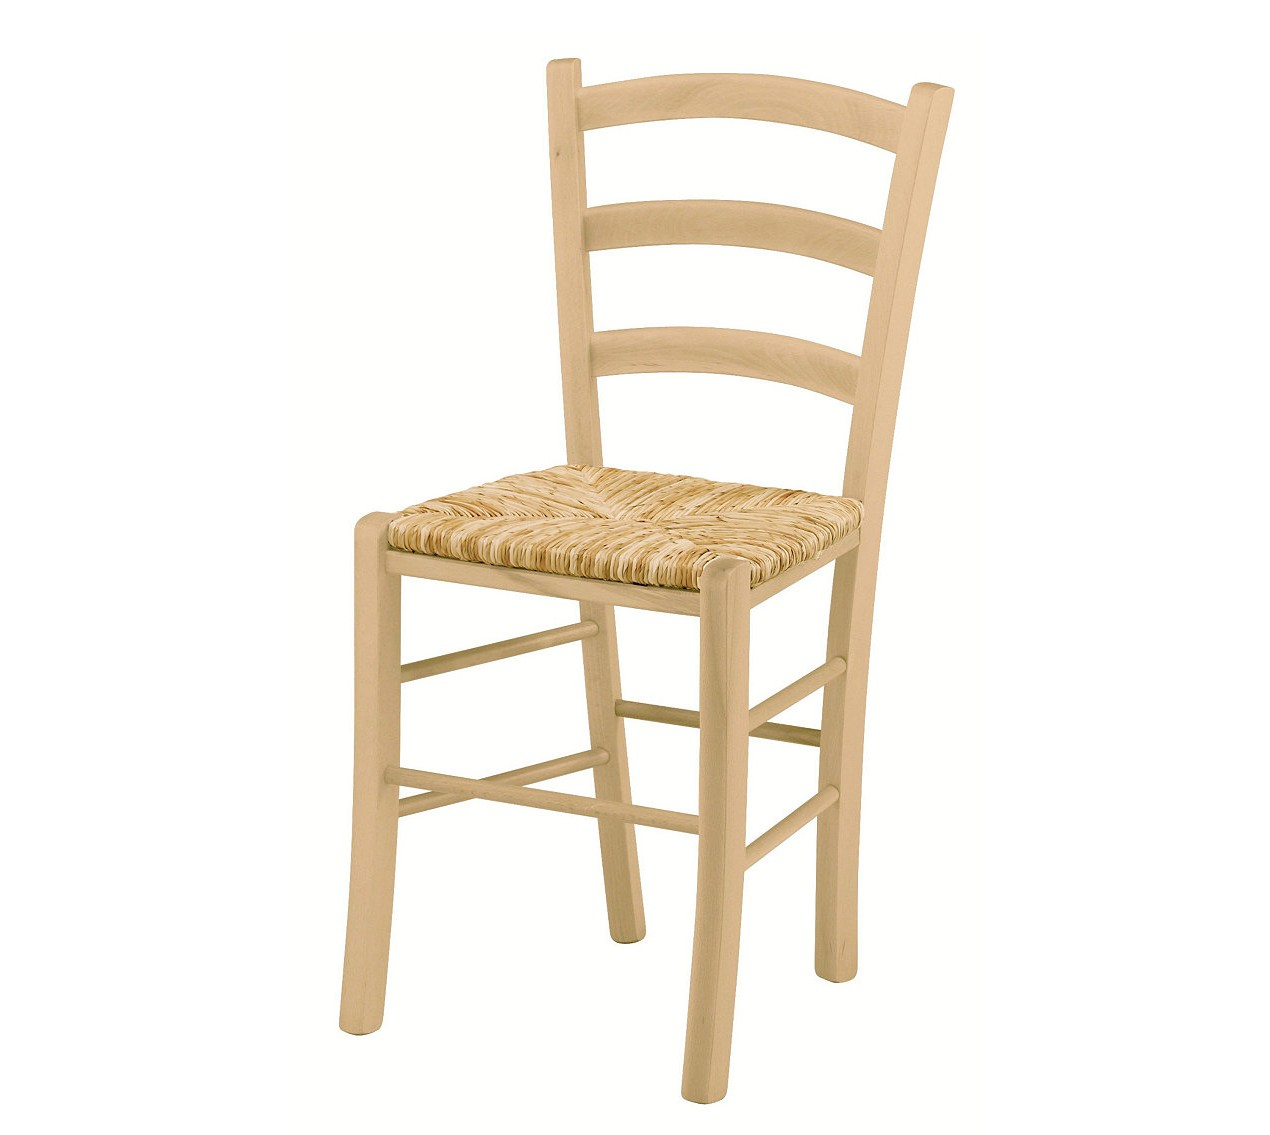 Chaise de cuisine en bois chez but chaise id es de for Chaise en bois